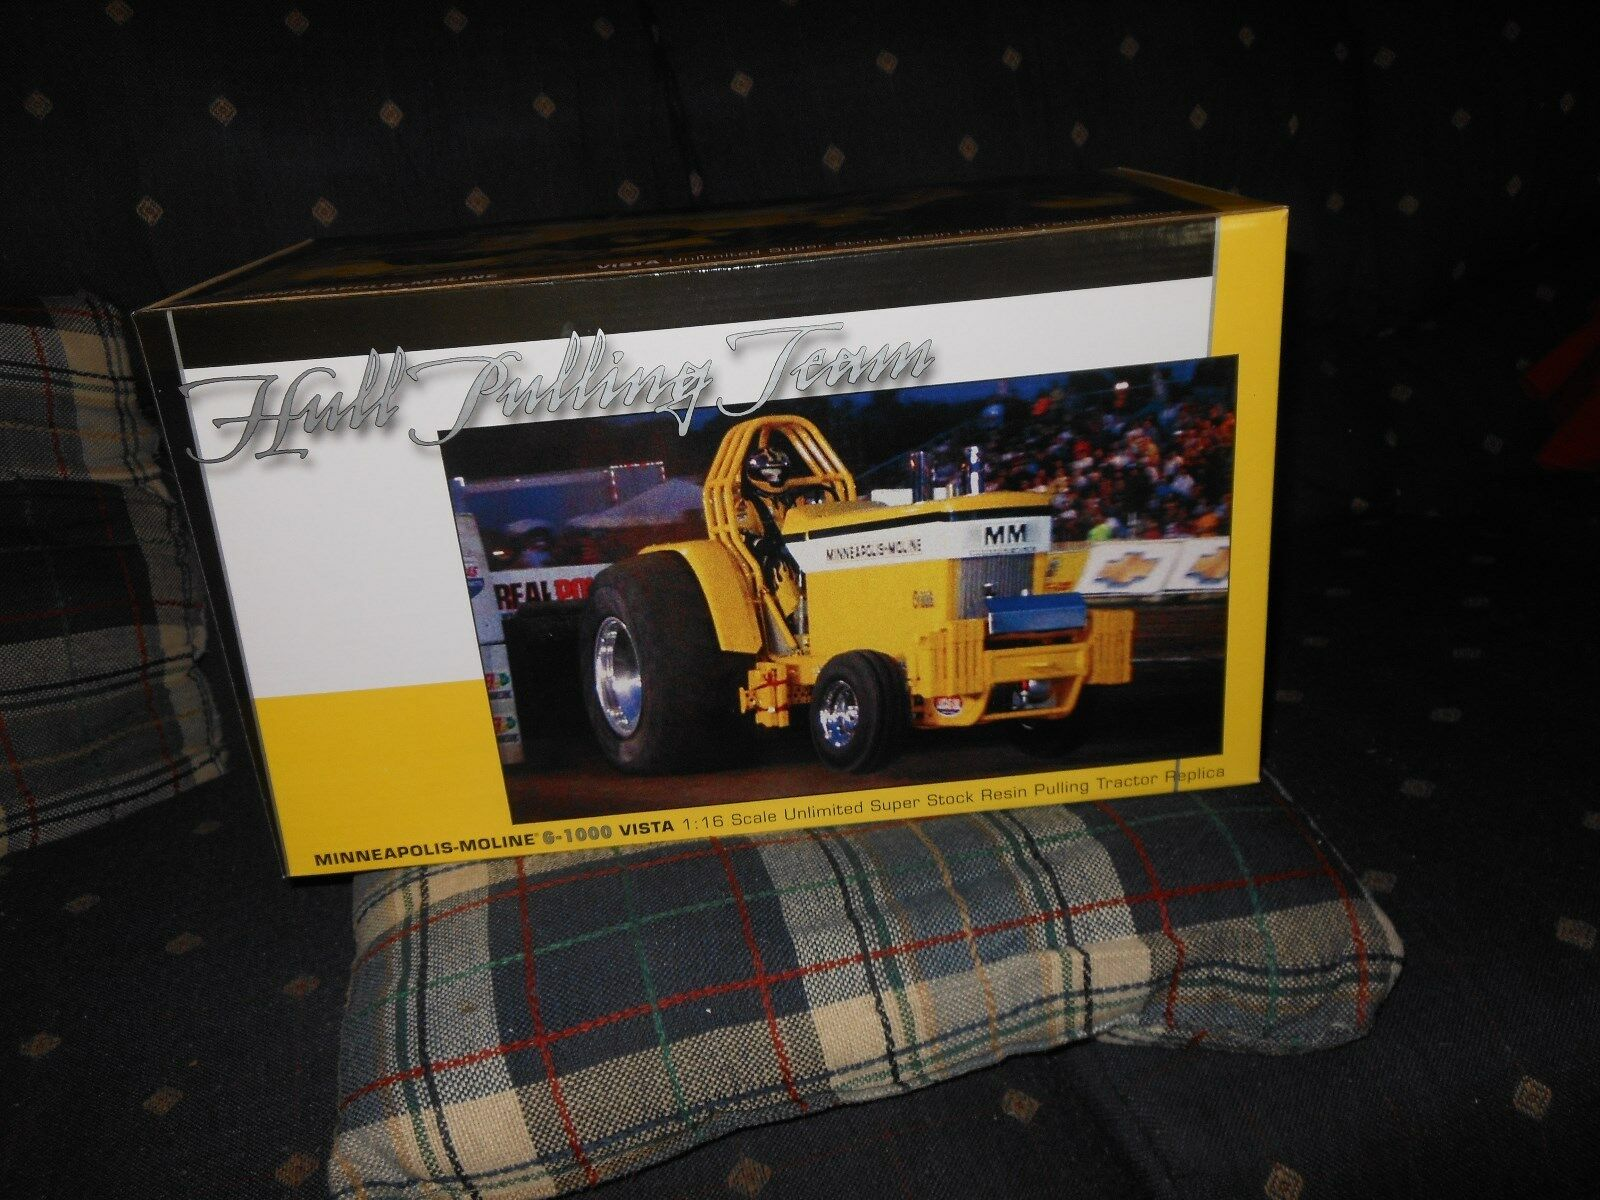 Minneapolis Moline G1000 puller toy tractor  (White, Oliver)   New in box